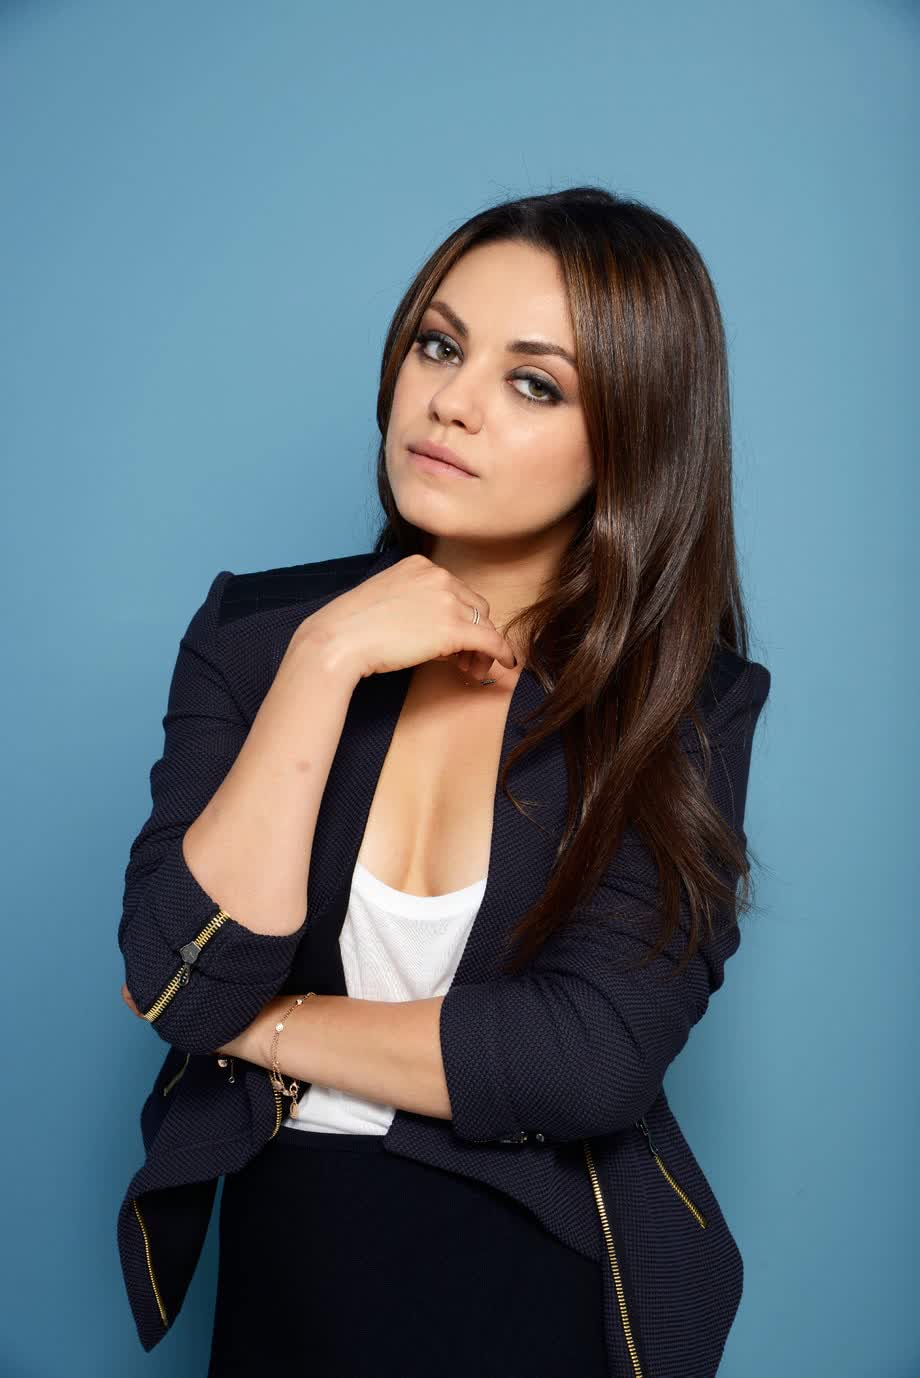 Mila Kunis wearing strict suit - Mila Kunis Net Worth, Movies, Family, Husband, Pictures and Wallpapers